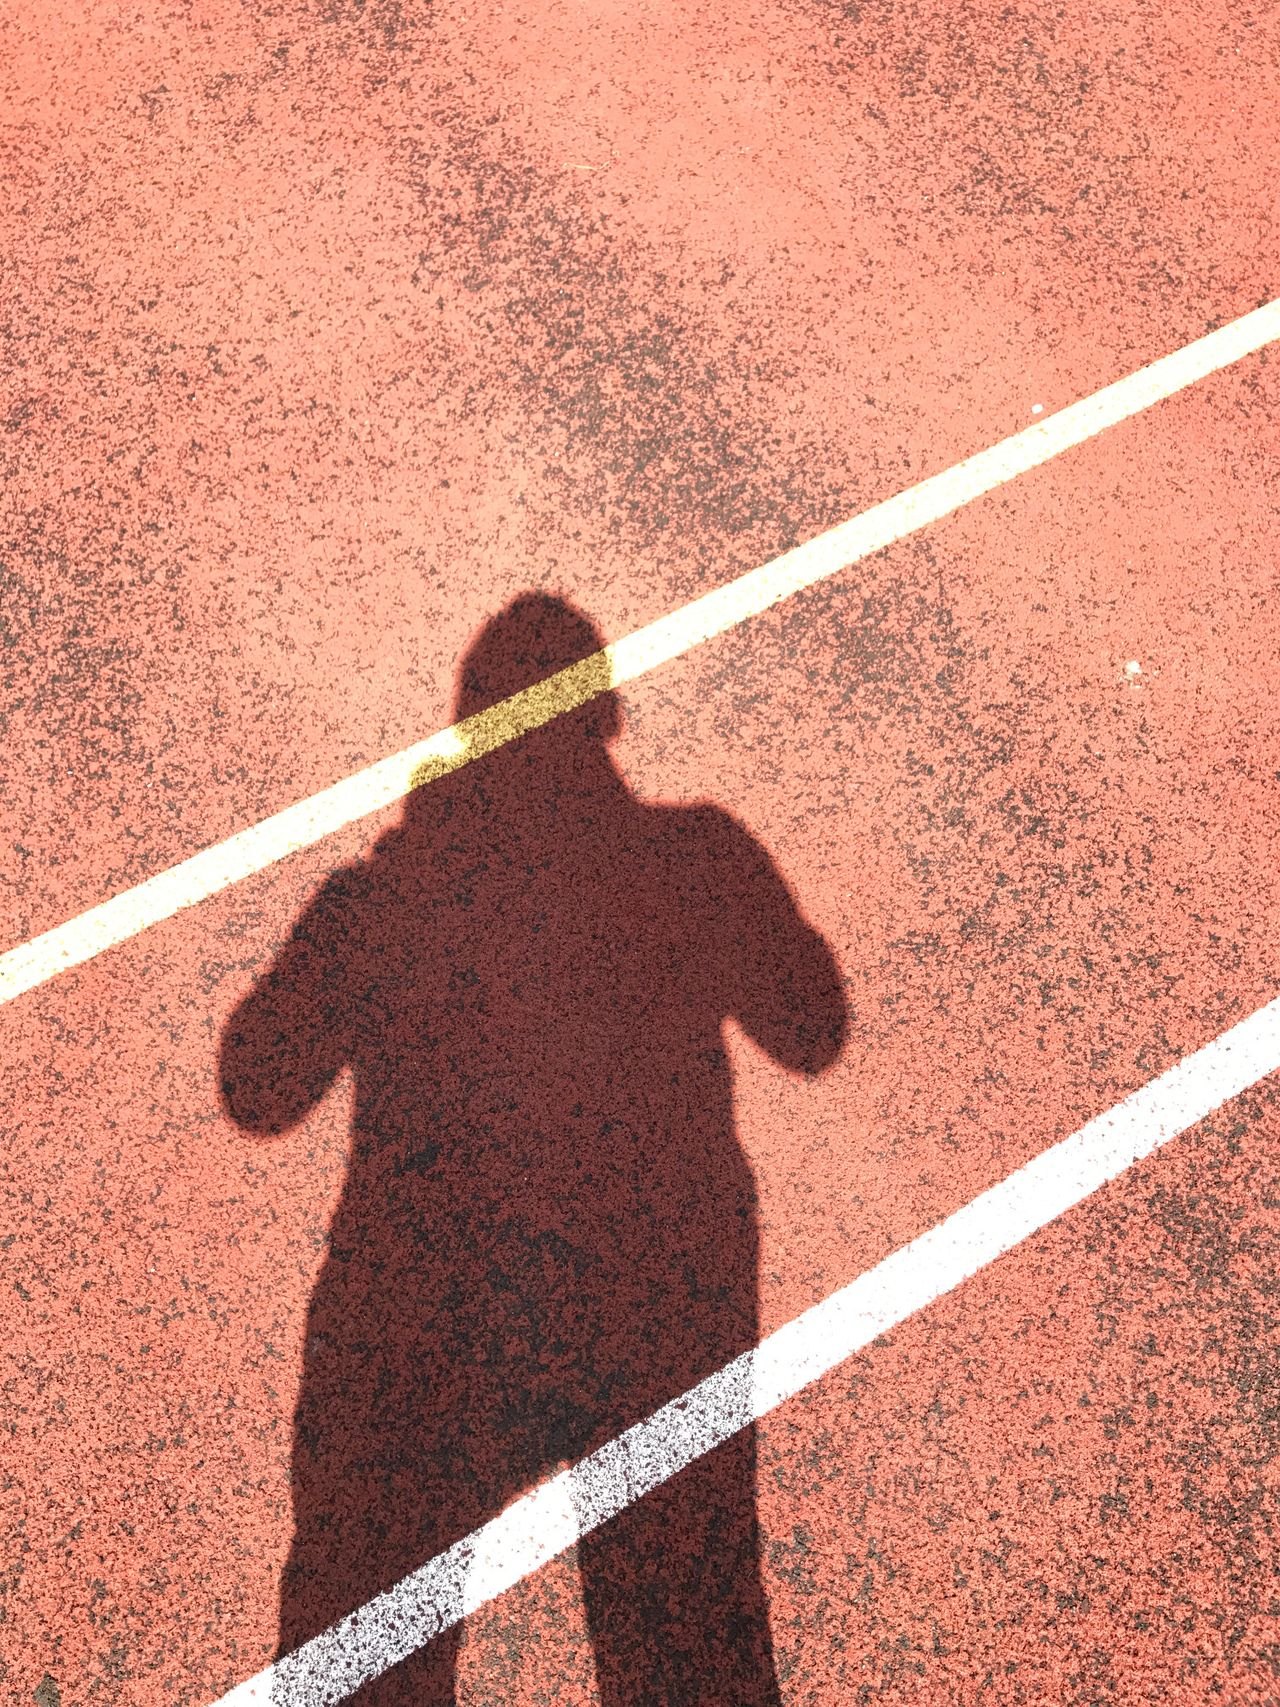 Shadow Sport Focus On Shadow Running Track Track And Field One Person Sunlight Red Outdoors High Angle View Tennis Dividing Line Leisure Activity Court Sports Track Human Body Part Day Starting Line Competitive Sport Track And Field Athlete